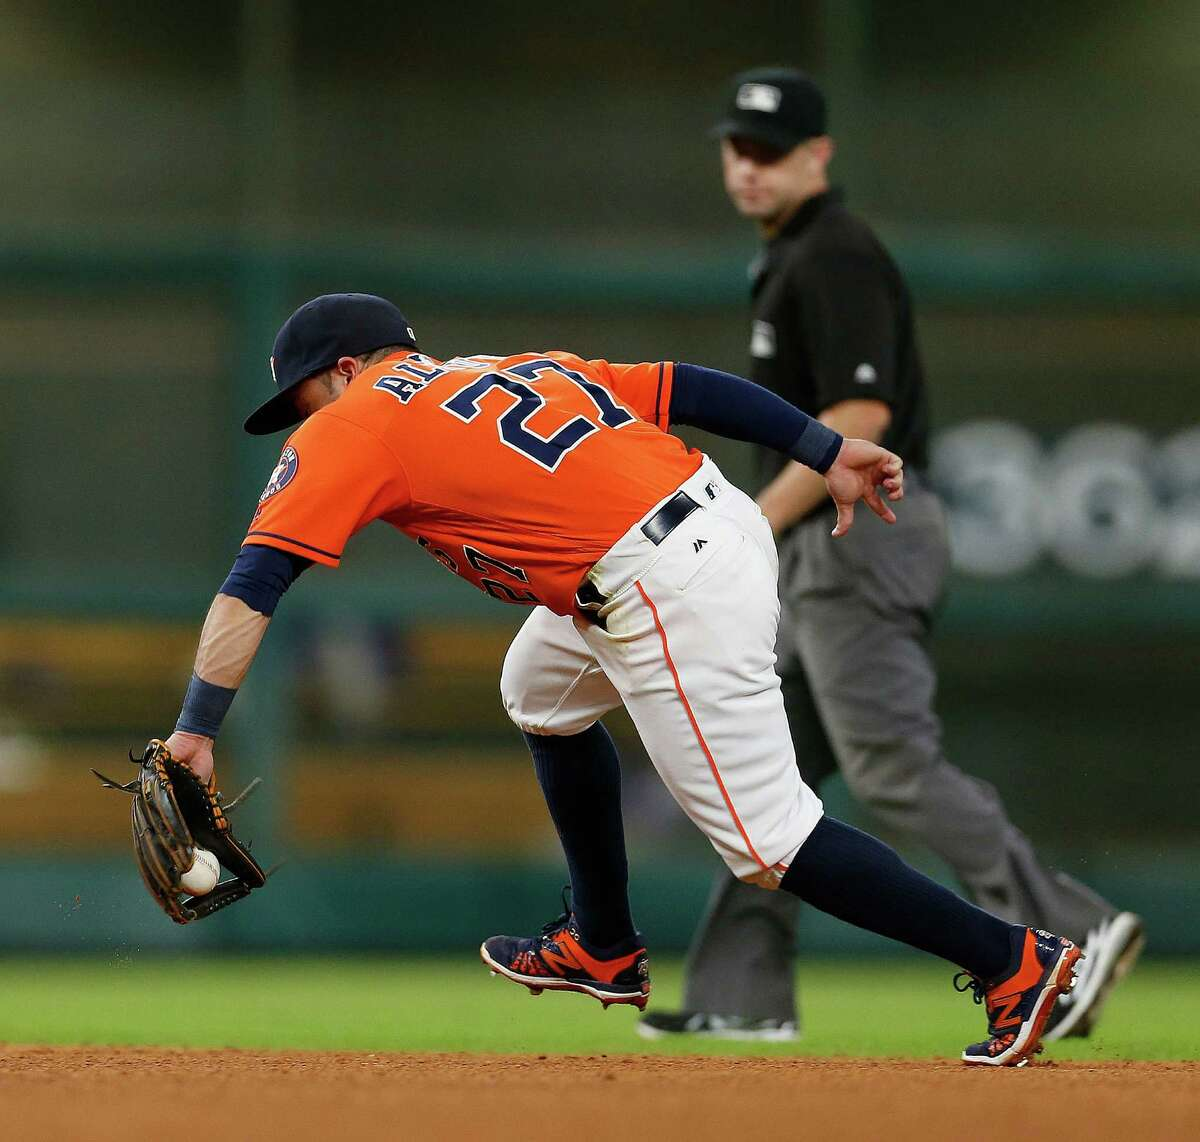 Houston Astros second baseman Jose Altuve (27) fields Texas Rangers Shin-Soo Choo's ground ball during the sixth inning of an MLB game at Minute Maid Park, Friday, Aug. 5, 2016, in Houston.